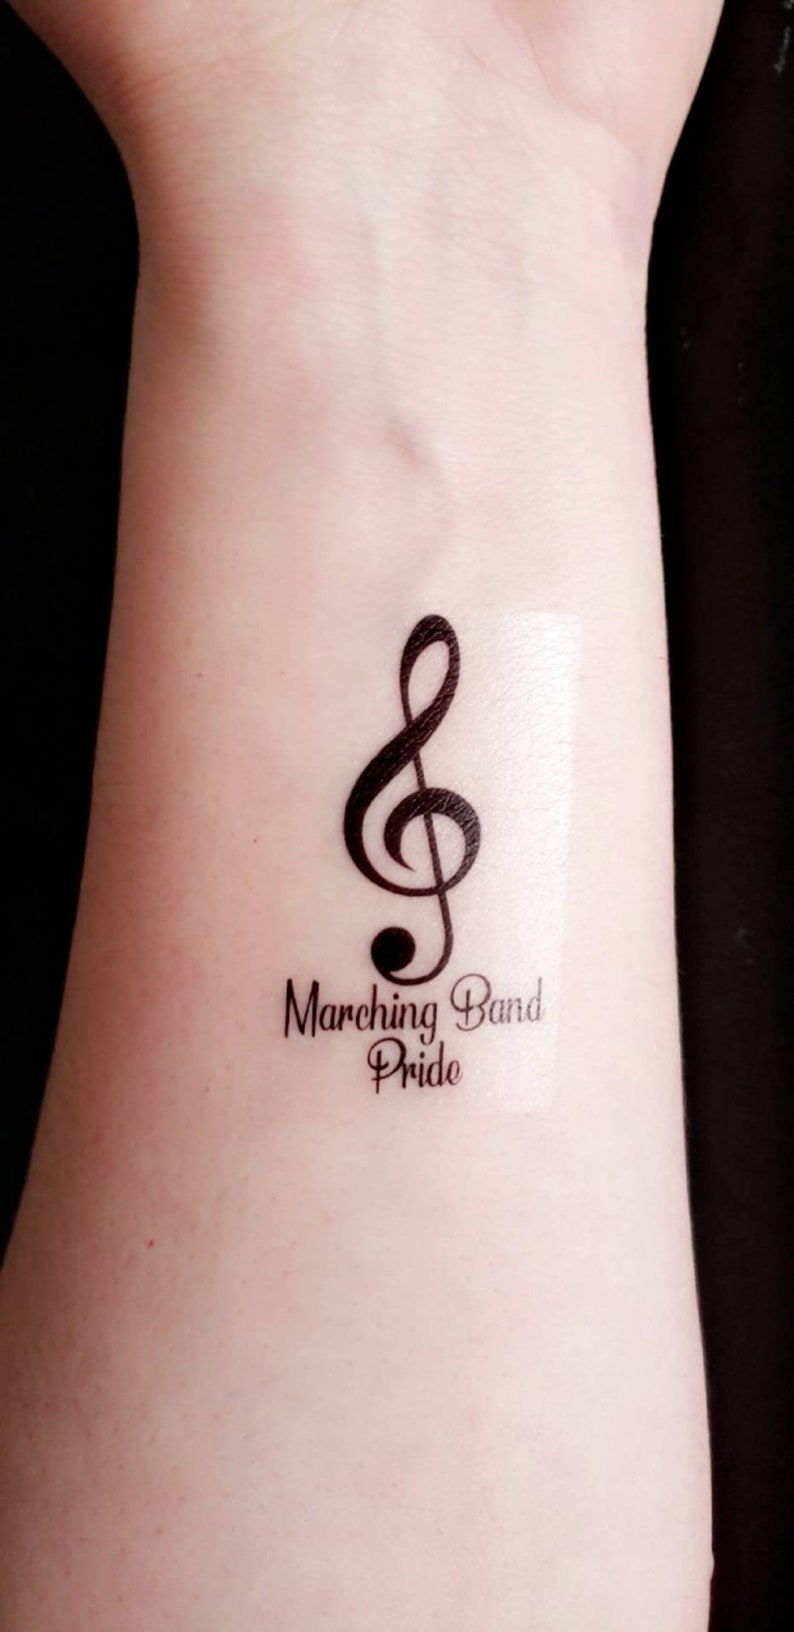 a7b213d8b 24ct customized marching band music note temporary tattoo | Etsy